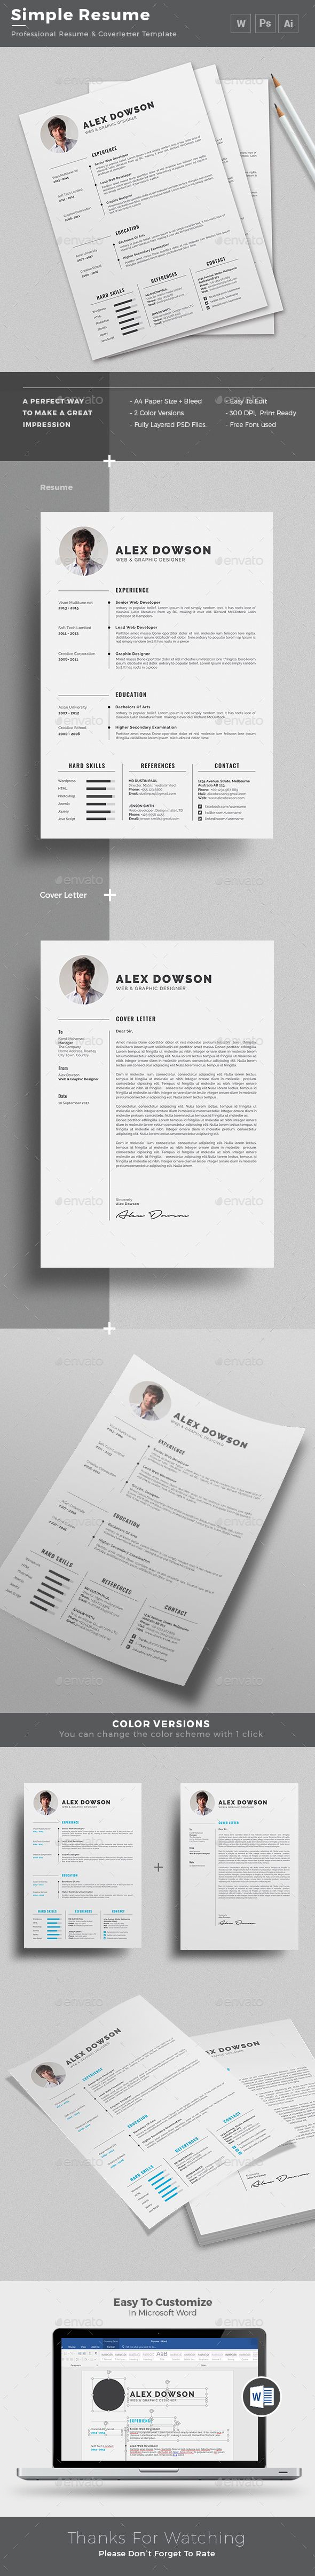 Best Resume Format Free Download Ideas  Word Cover Letter